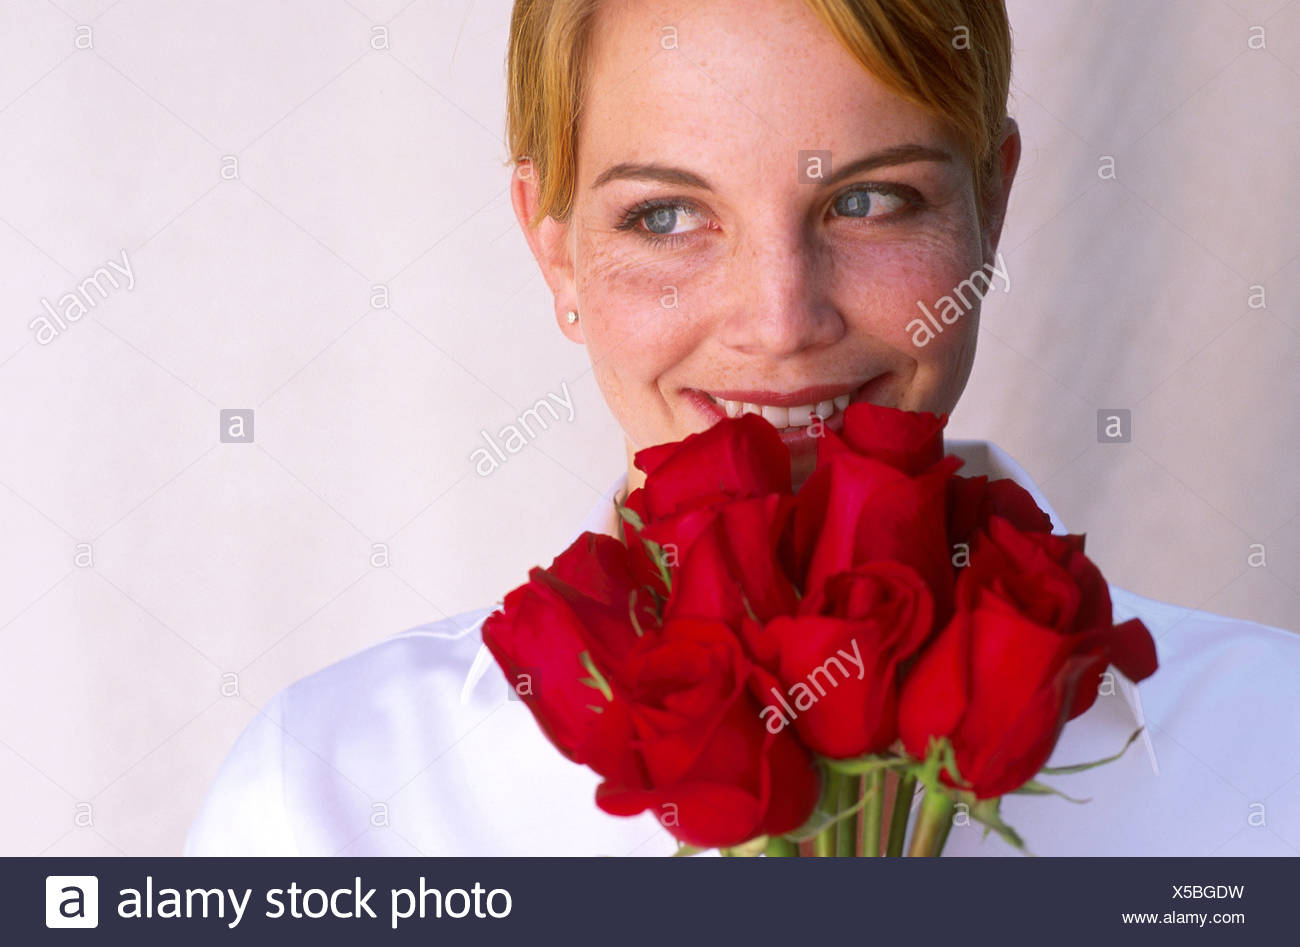 Woman with red roses - Stock Image